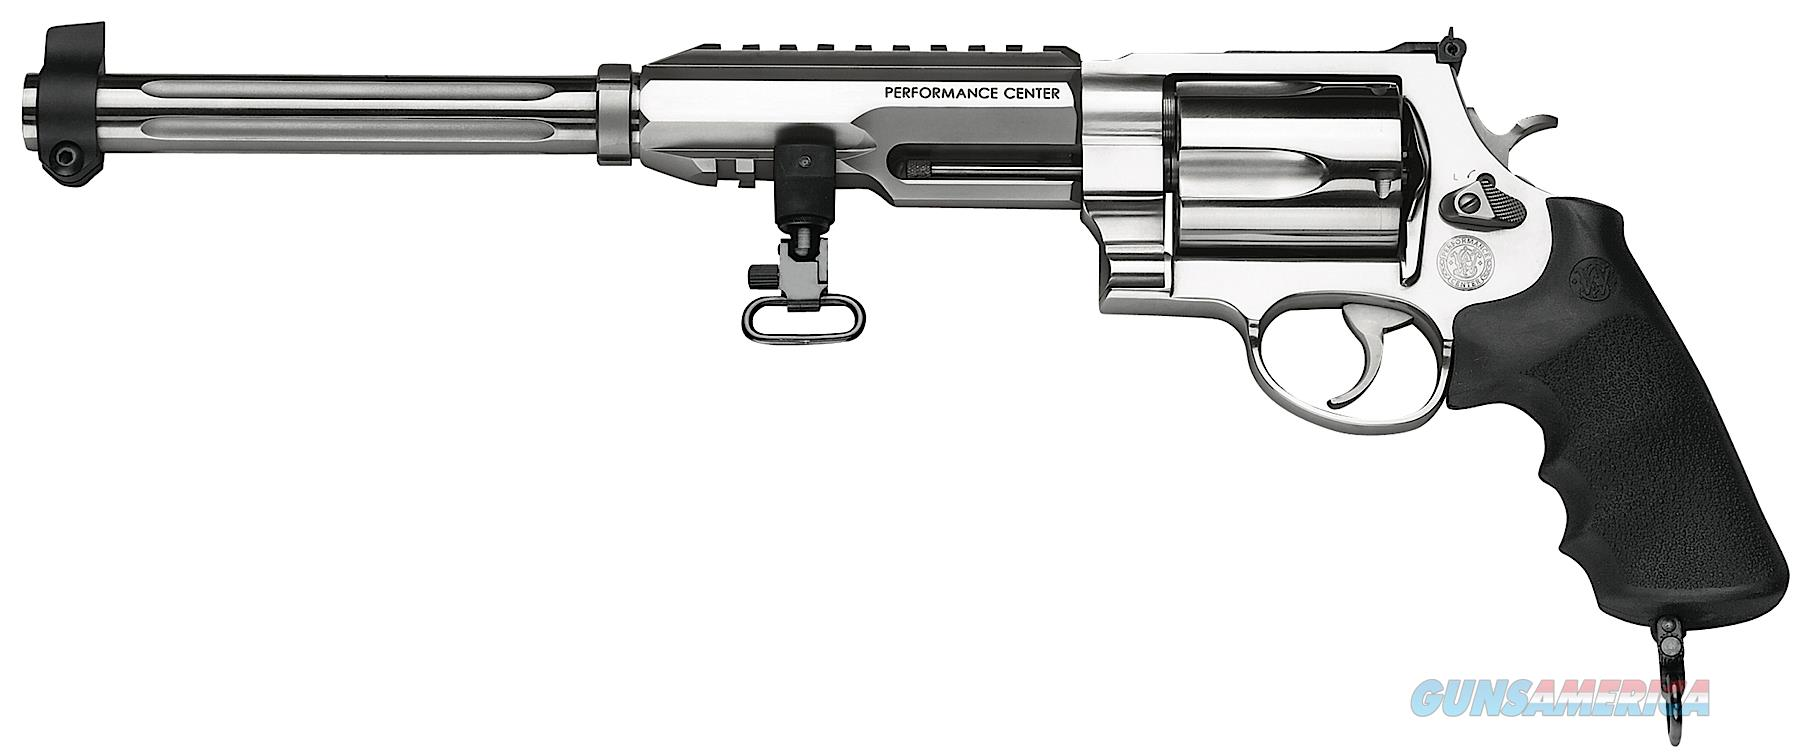 "Smith & Wesson 170280 460 Performance Center XVR Single/Double 460 Smith & Wesson Magnum 12"" 5 Black  Guns > Pistols > S Misc Pistols"